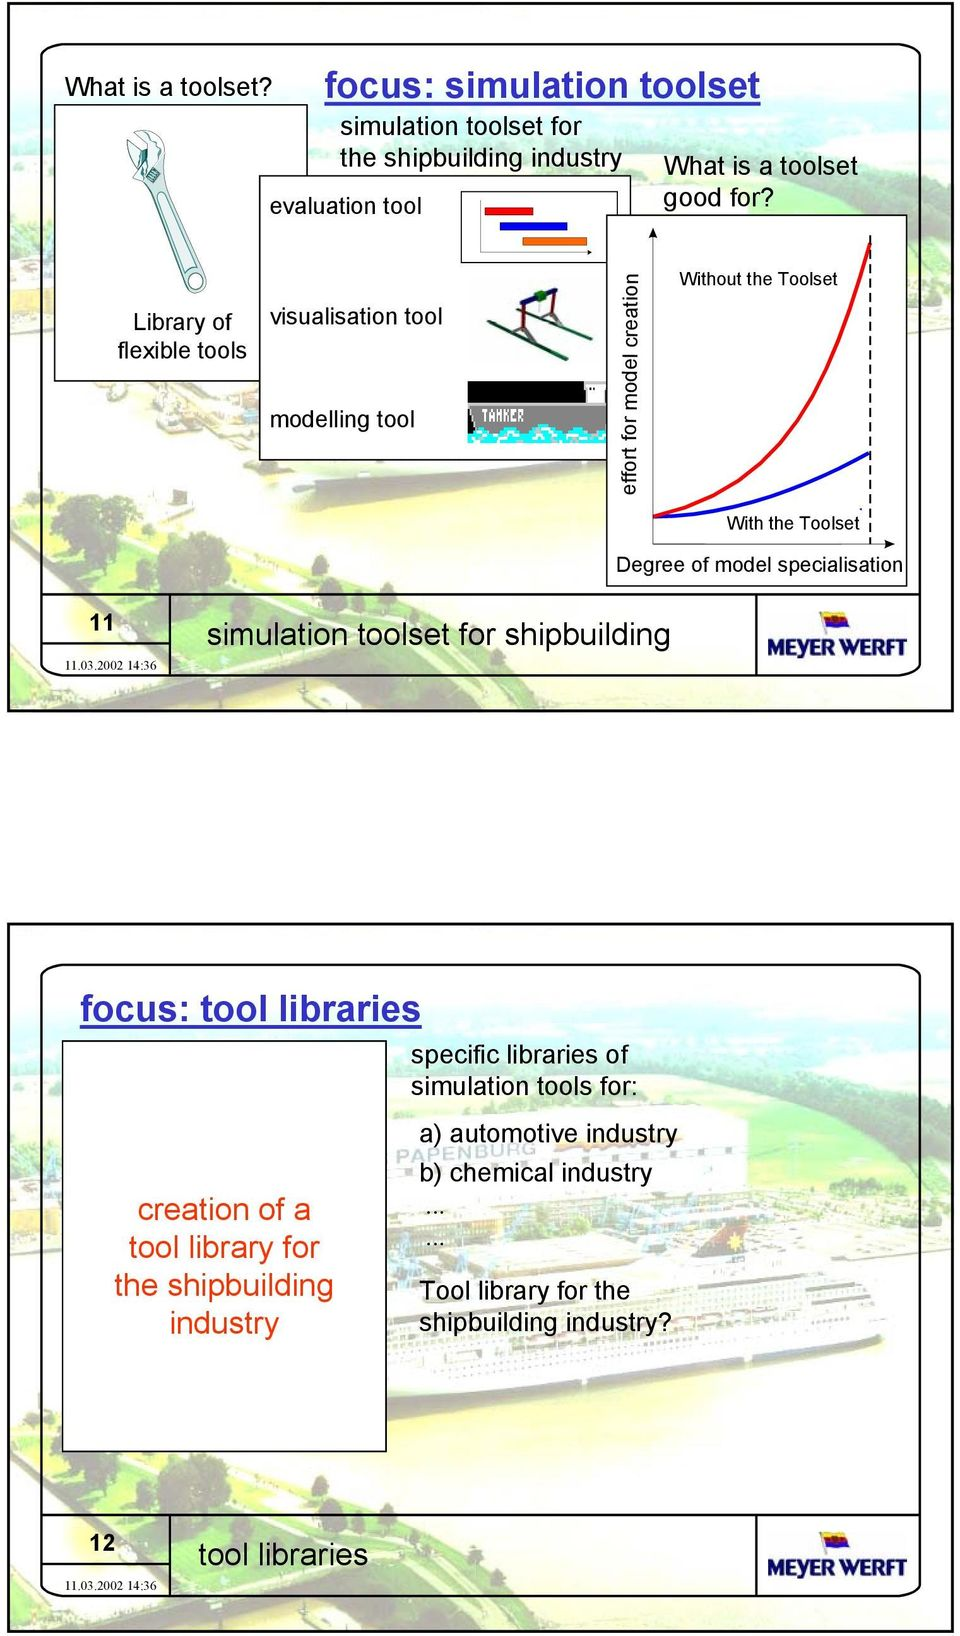 specialisation 11 simulation toolset for shipbuilding focus: tool libraries creation of a tool library for the shipbuilding industry specific